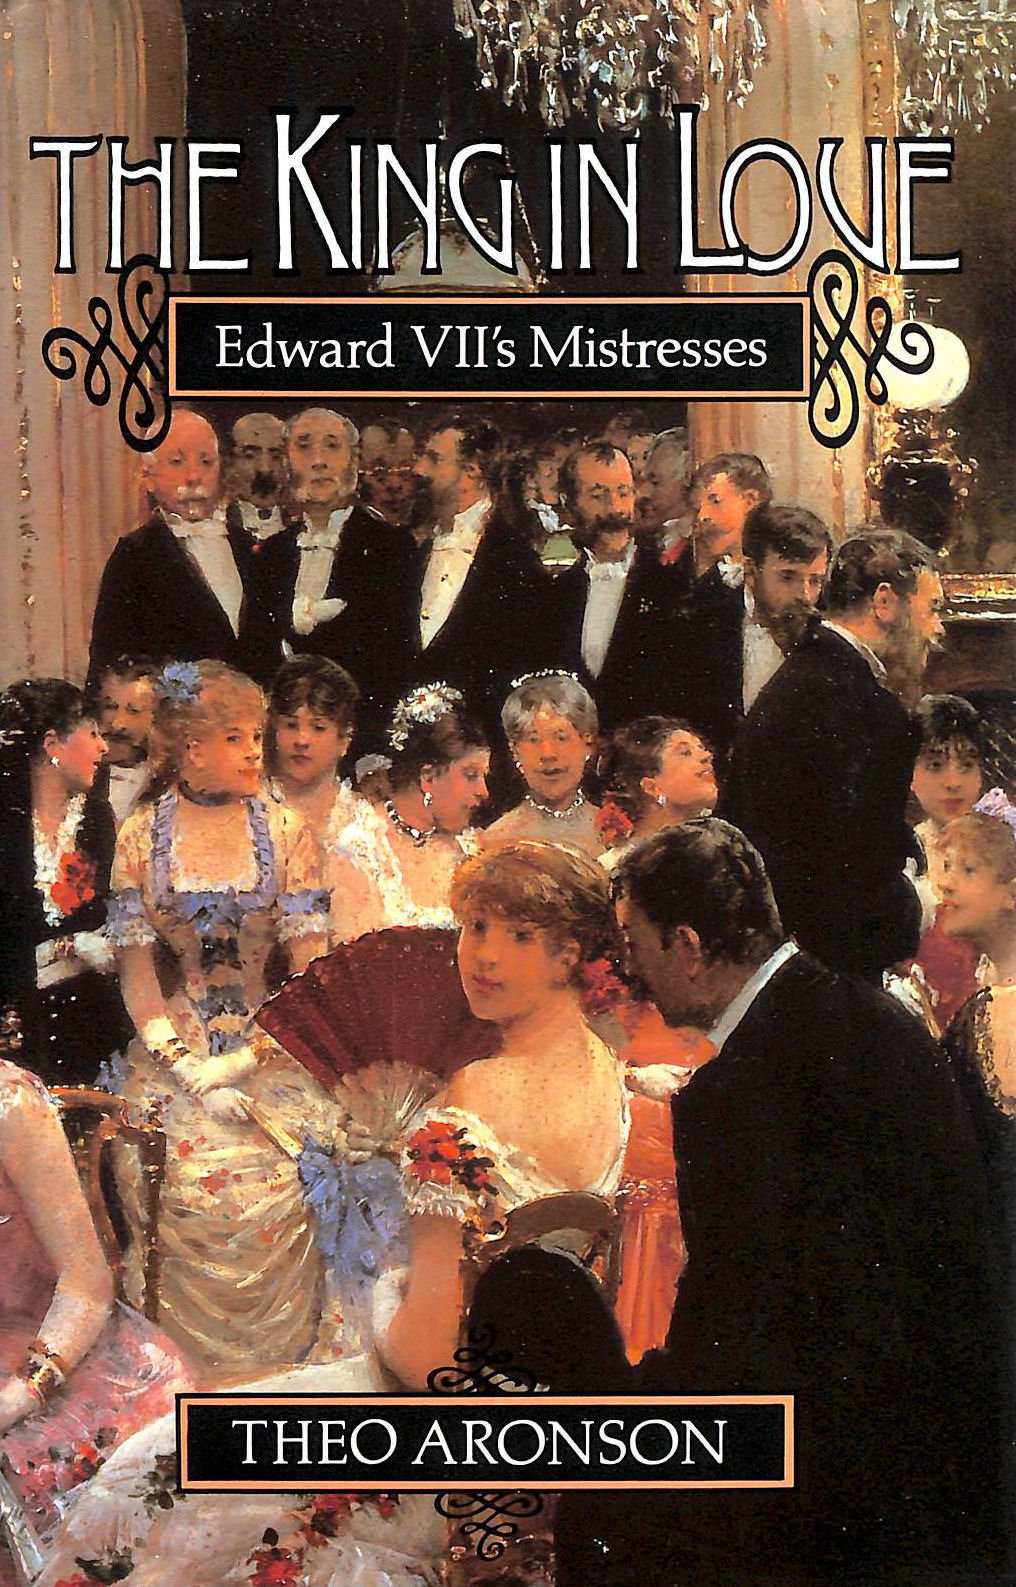 Image for The King In Love Edward VII's Mistresses